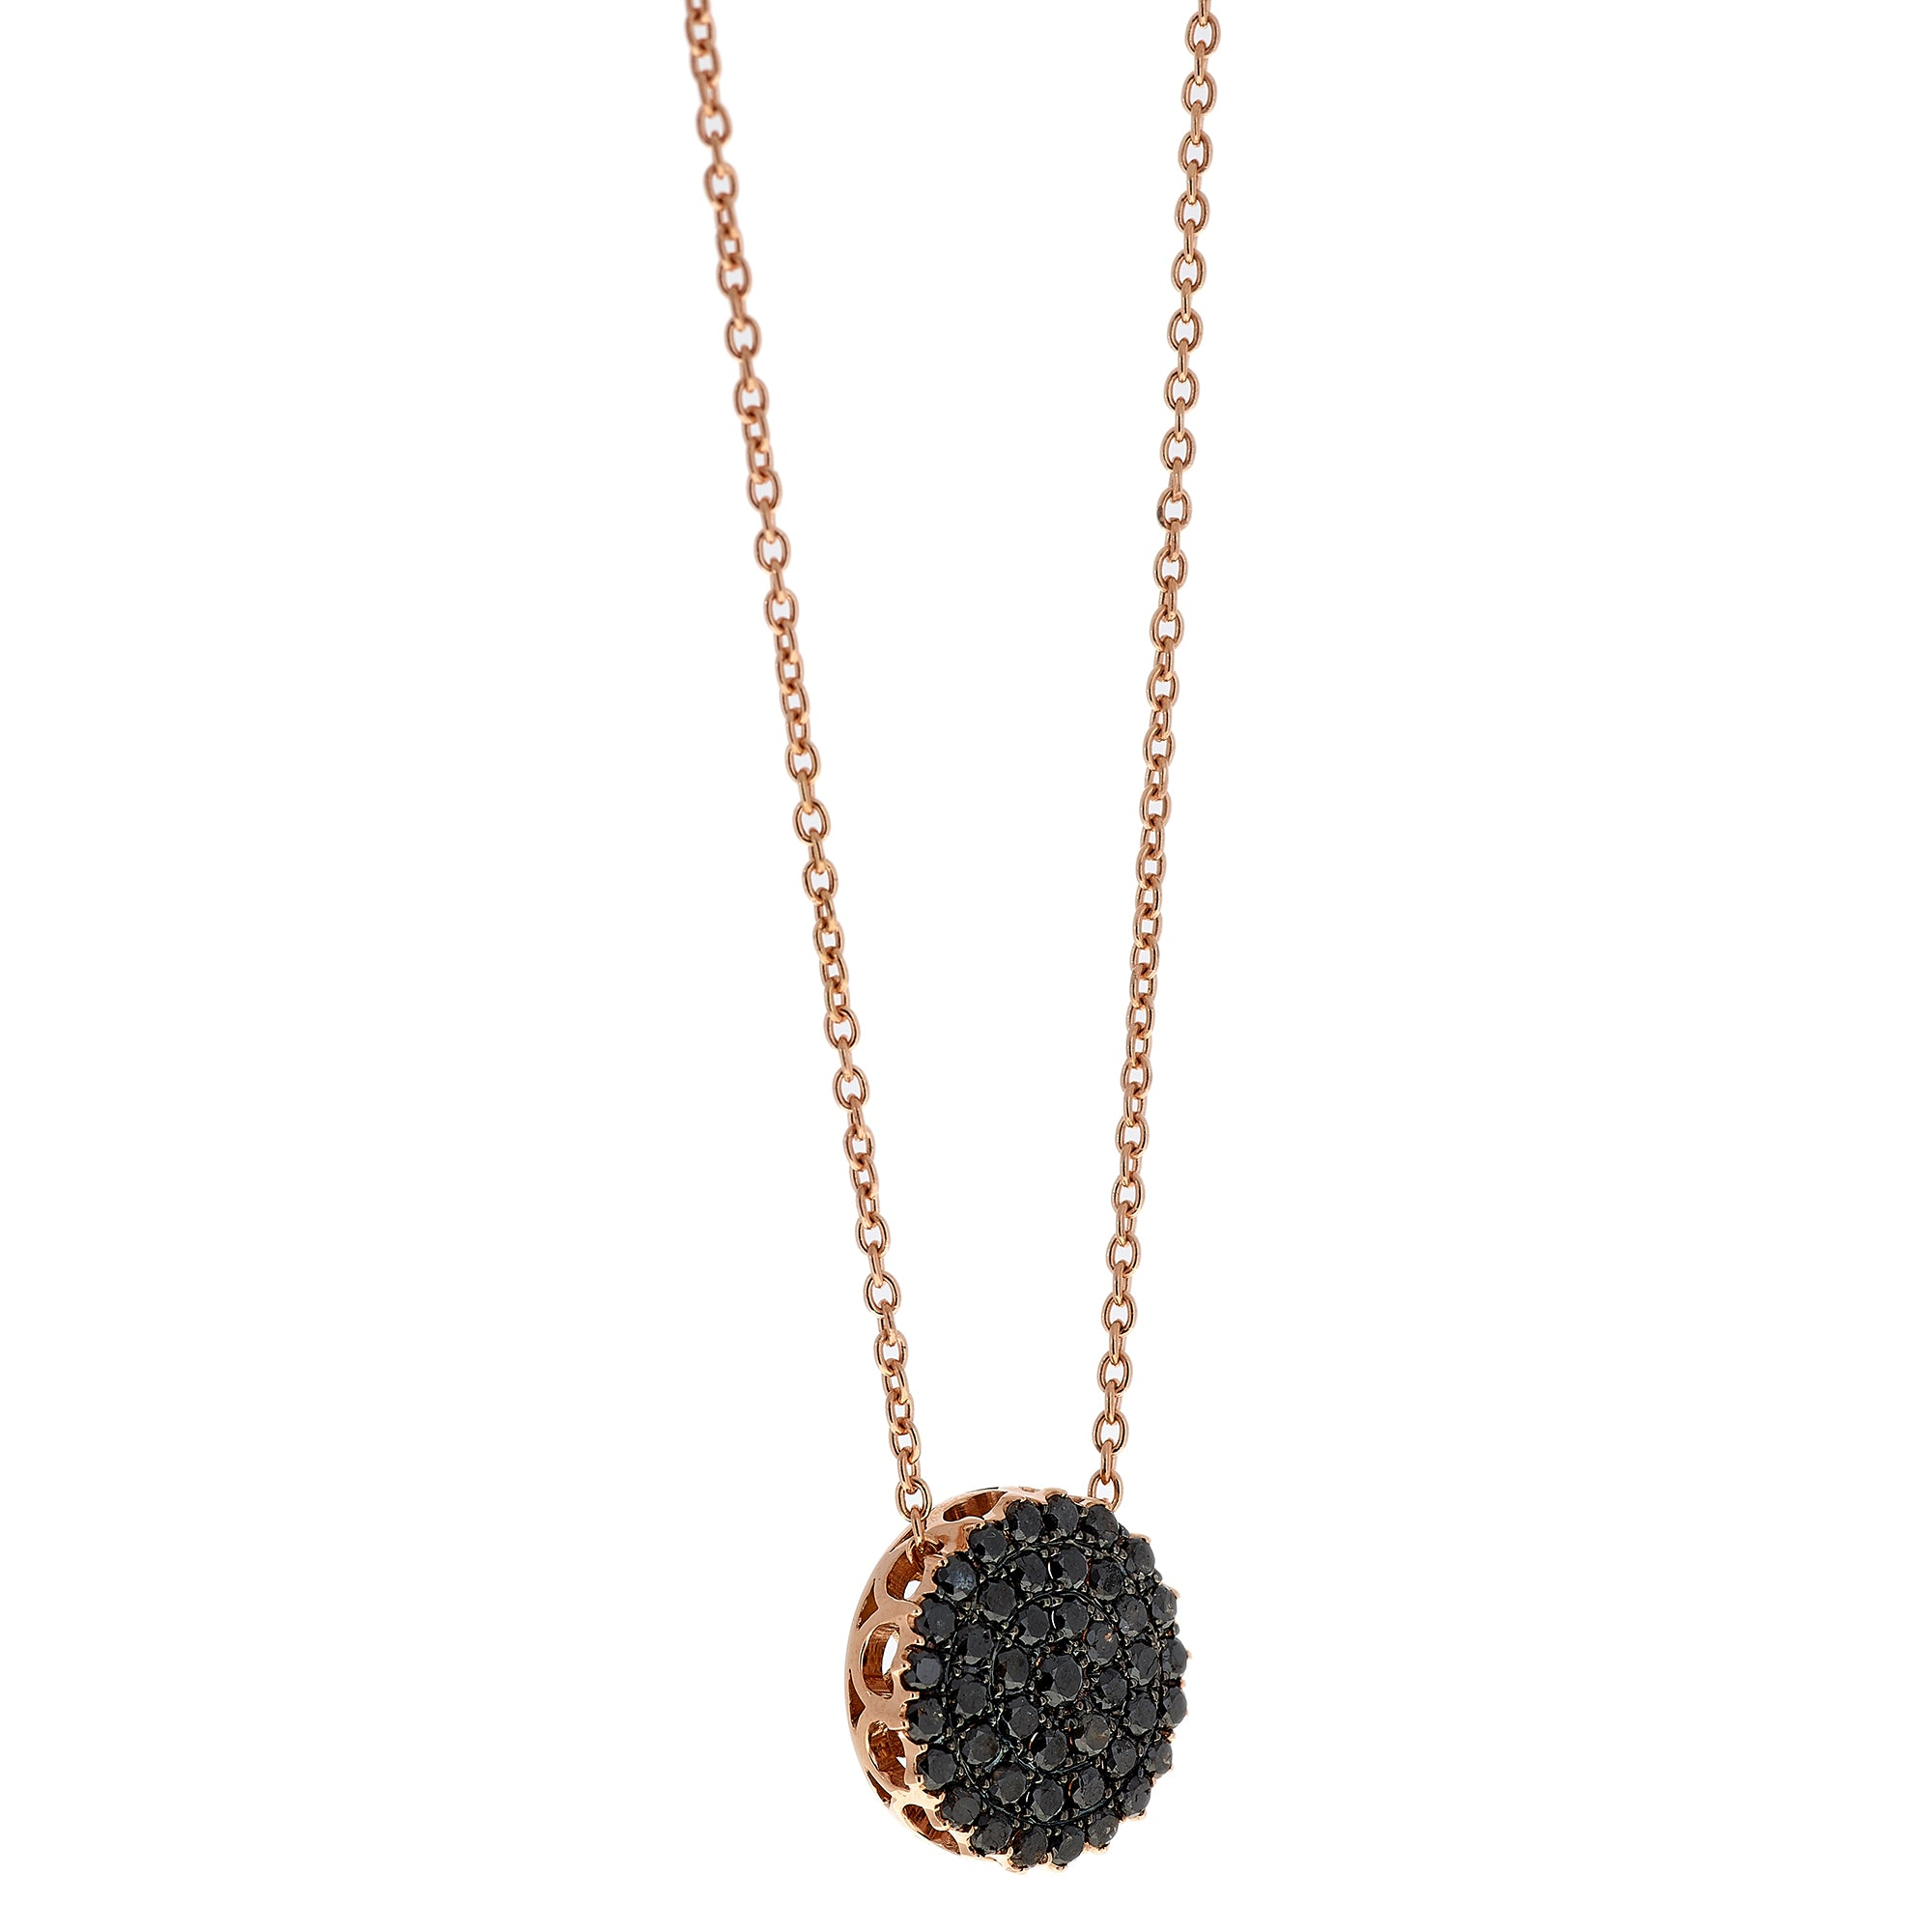 Black Diamond Necklace by Selim Mouzannar for Broken English Jewelry